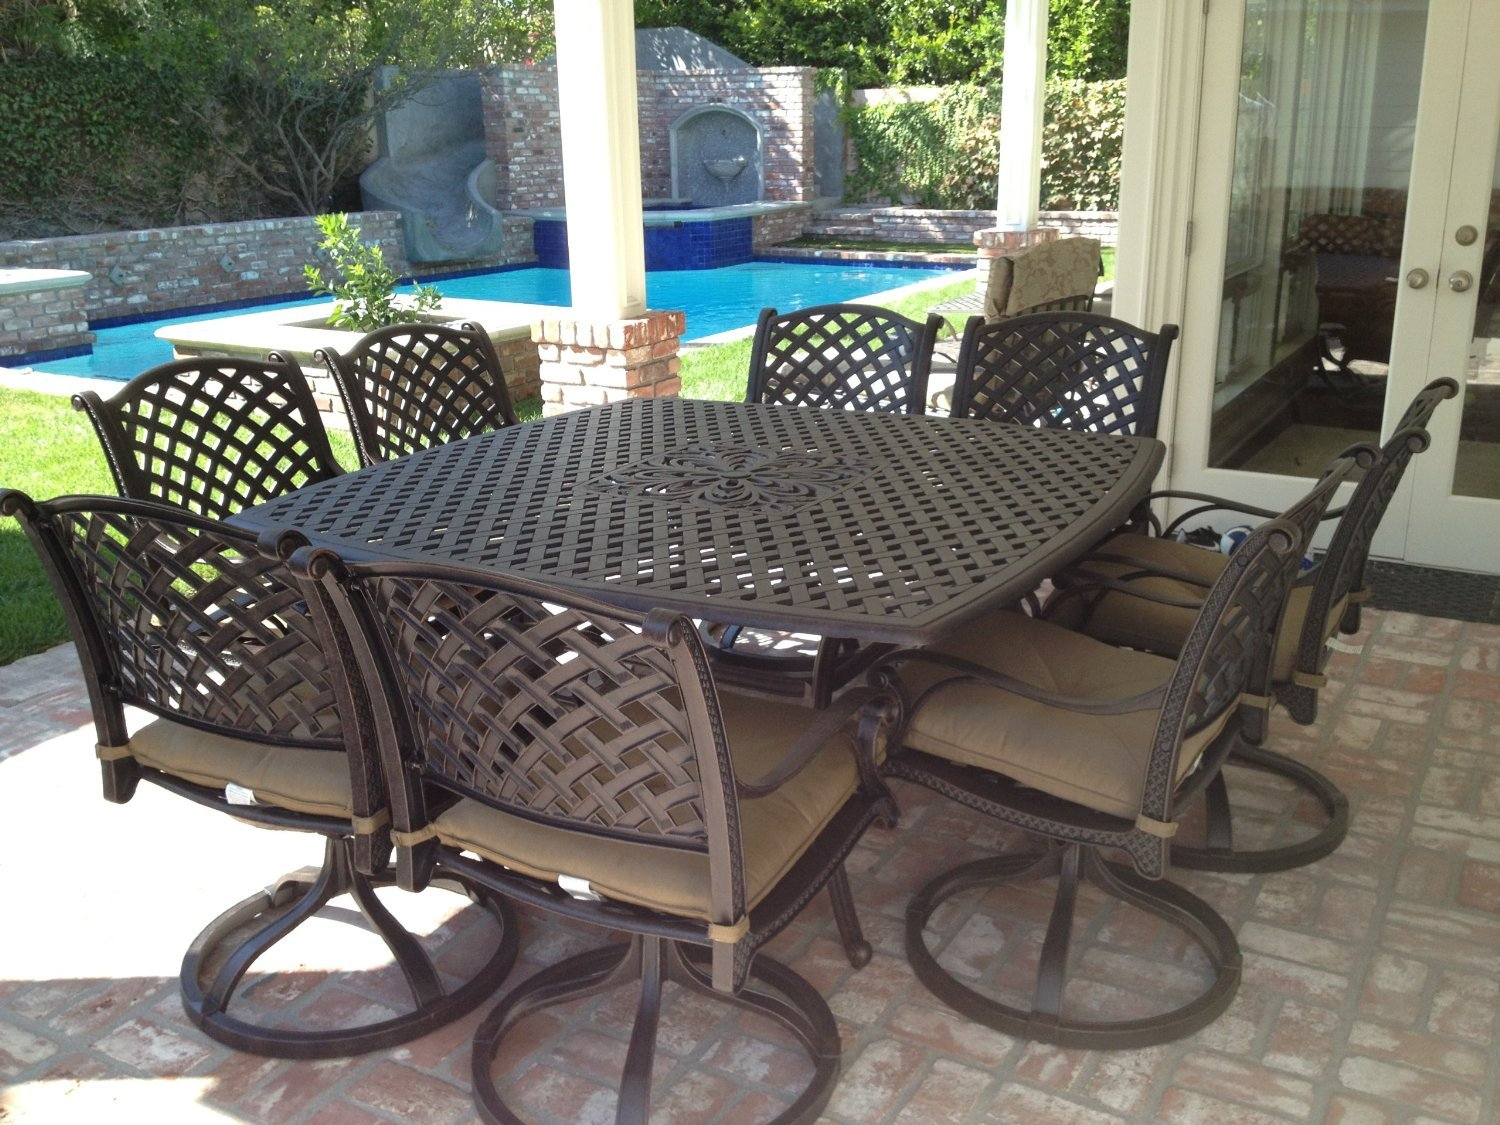 Nassau Cast Aluminum Powder Coated 9pc Outdoor Patio Dining Set with 64 x64 Square Table – Antique Bronze